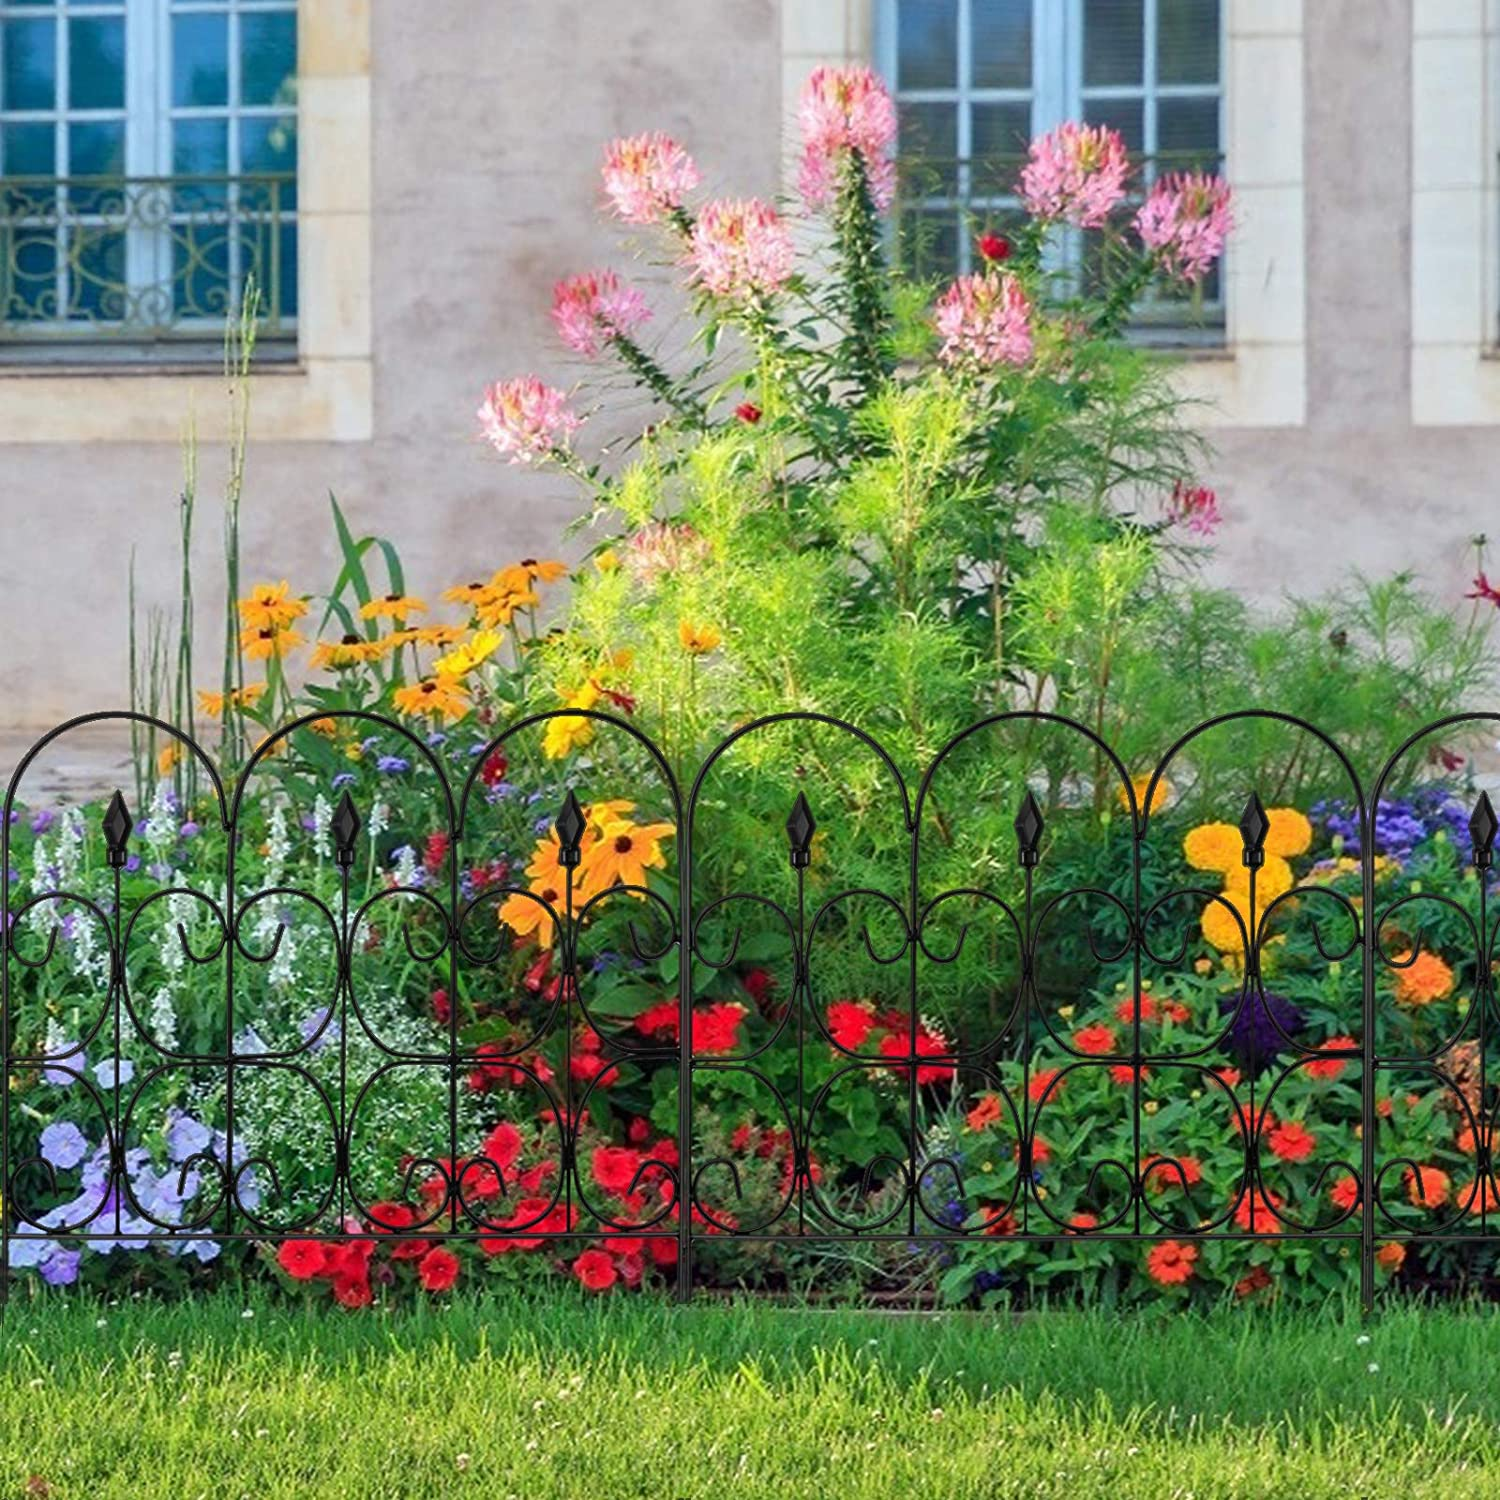 5 PCS 32in x 10ft Folding Decorative Garden Fence with Coated Metal Panels